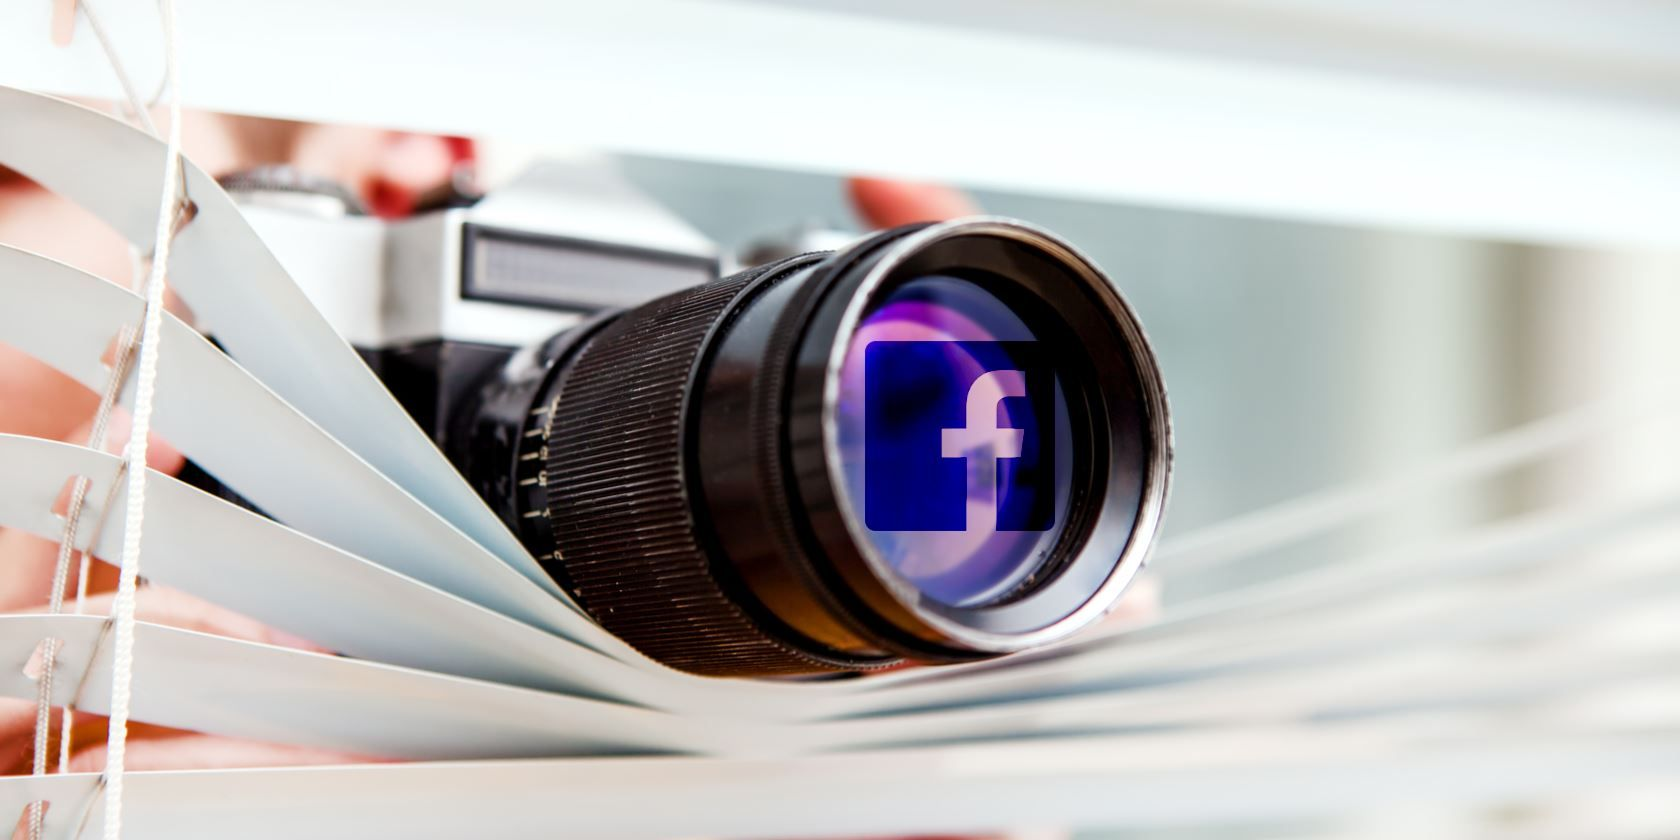 Facebook Is Tracking You! Here's How to Stop It